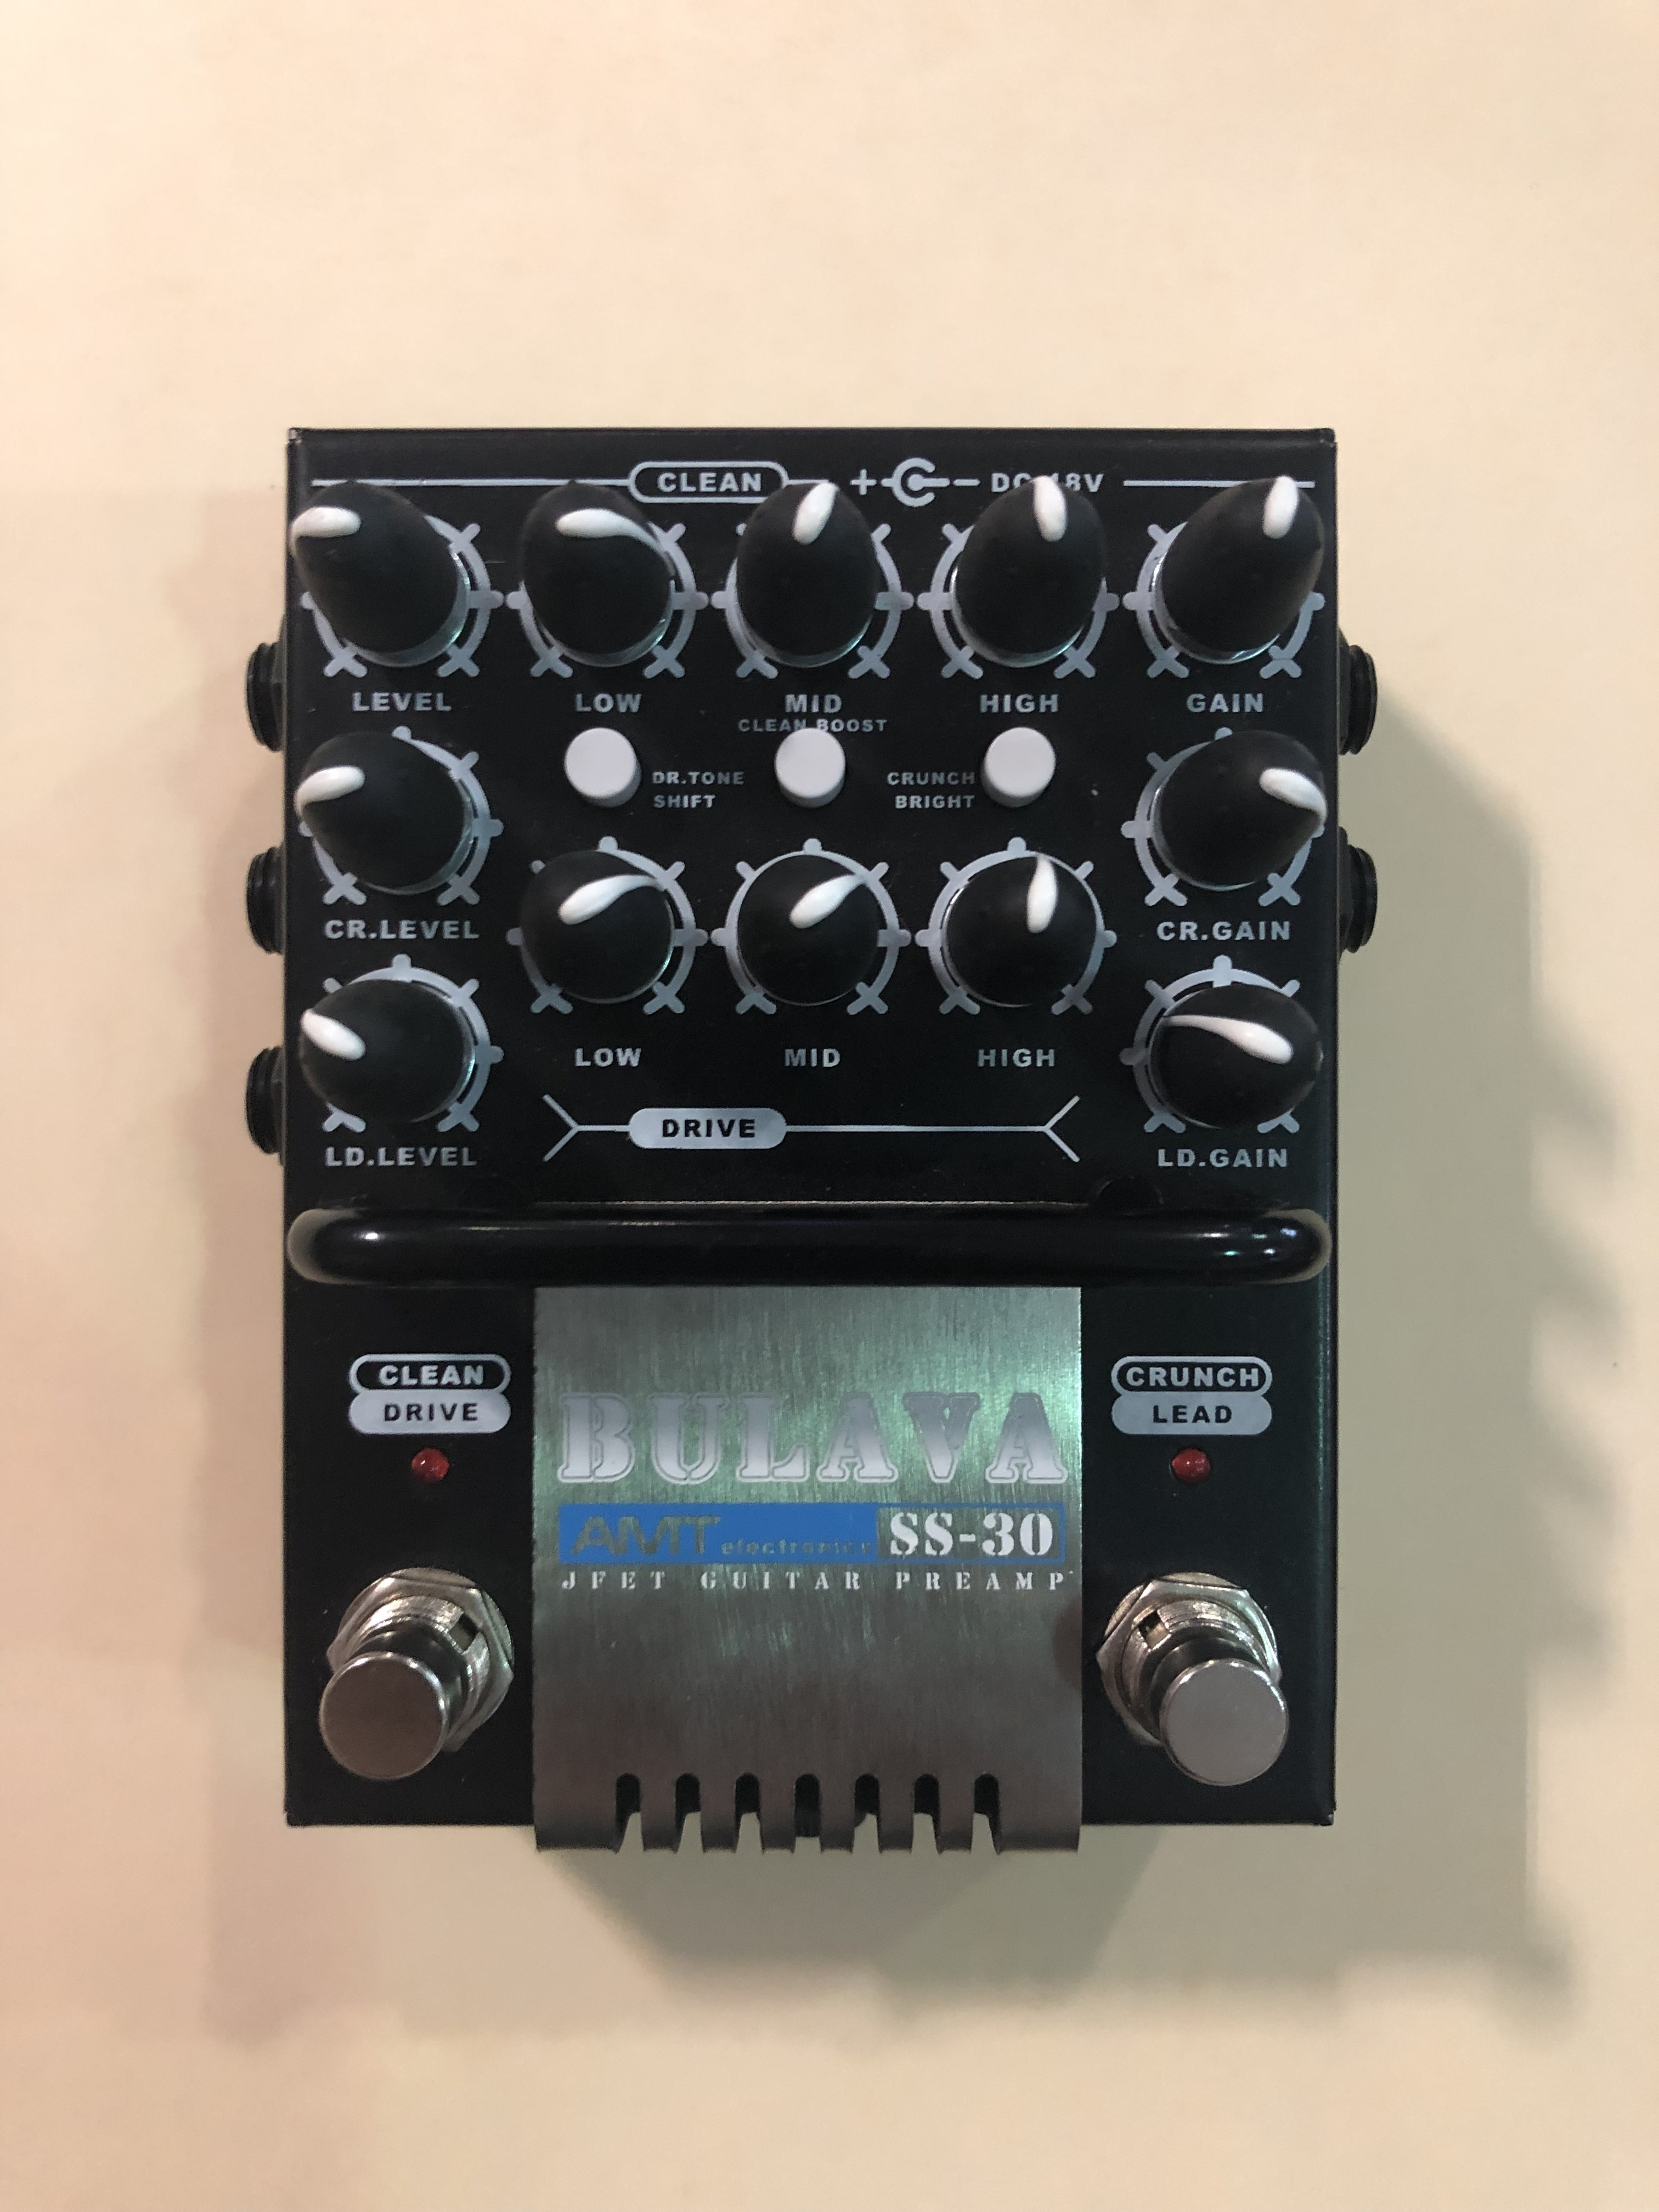 AMT - BULAVA - PREAMP EFFECTS PEDAL